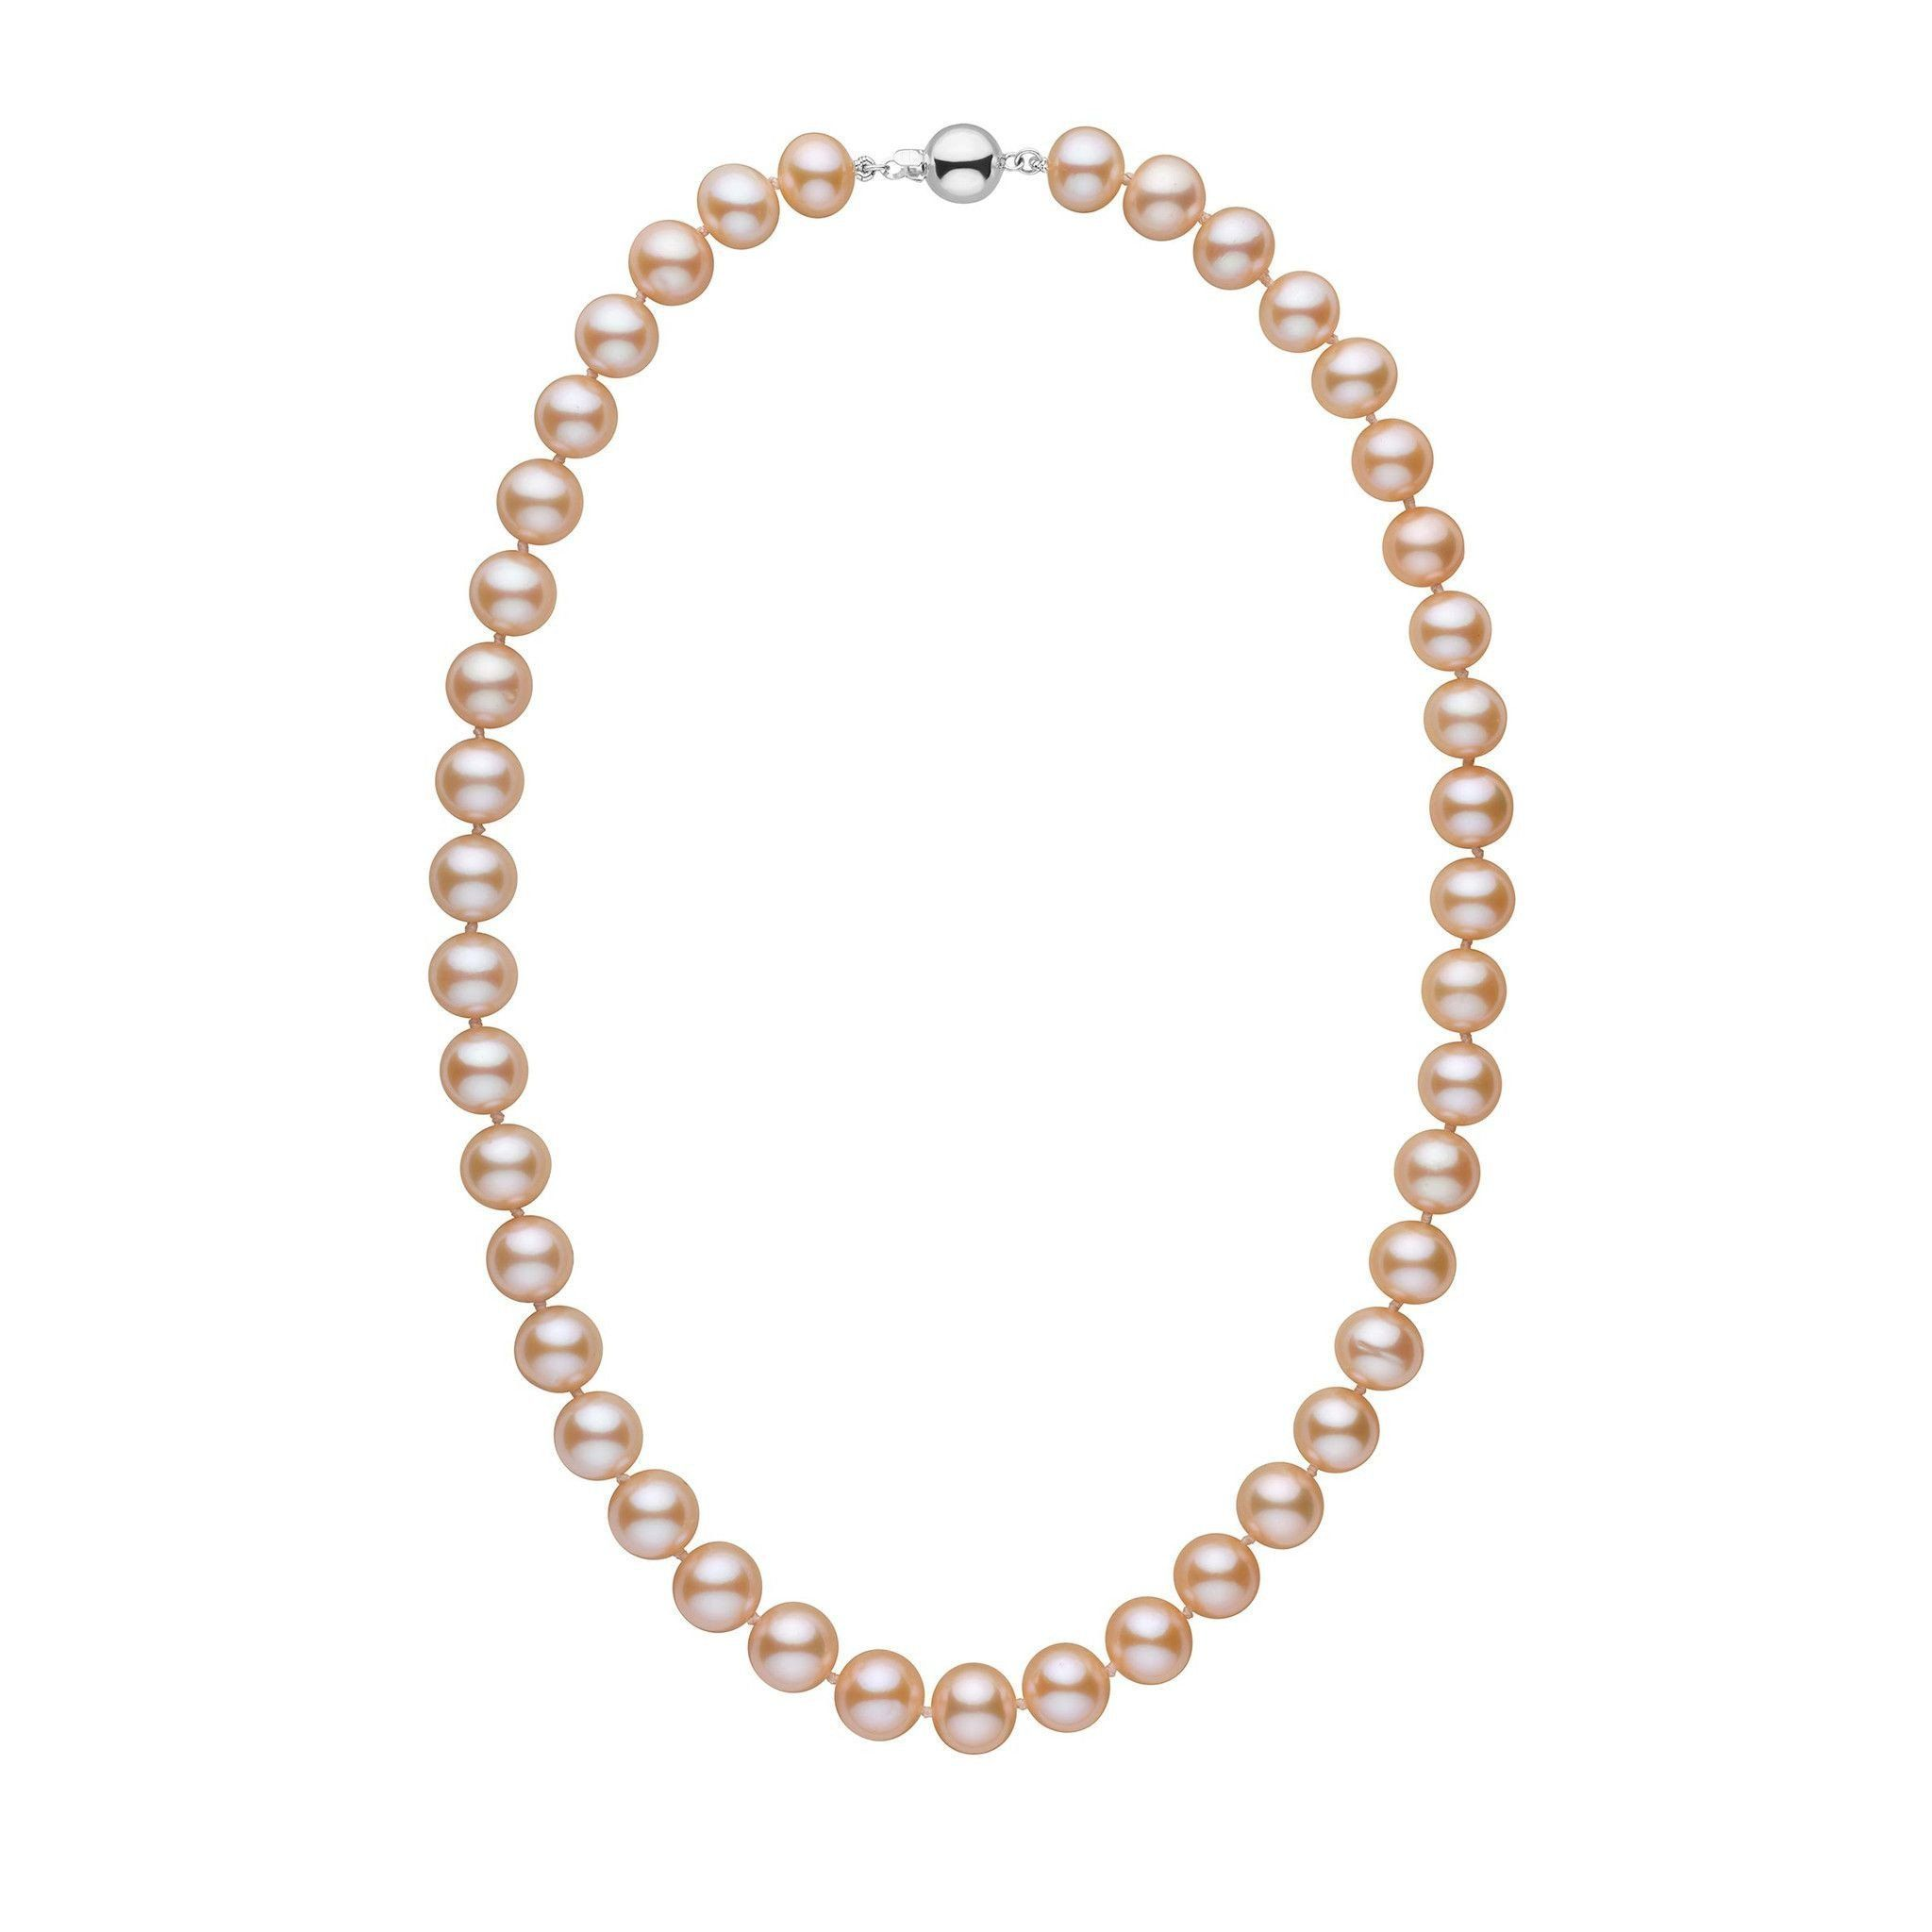 9.5-10.5 mm 18 inch AA+ Pink to Peach Freshwater Pearl Necklace